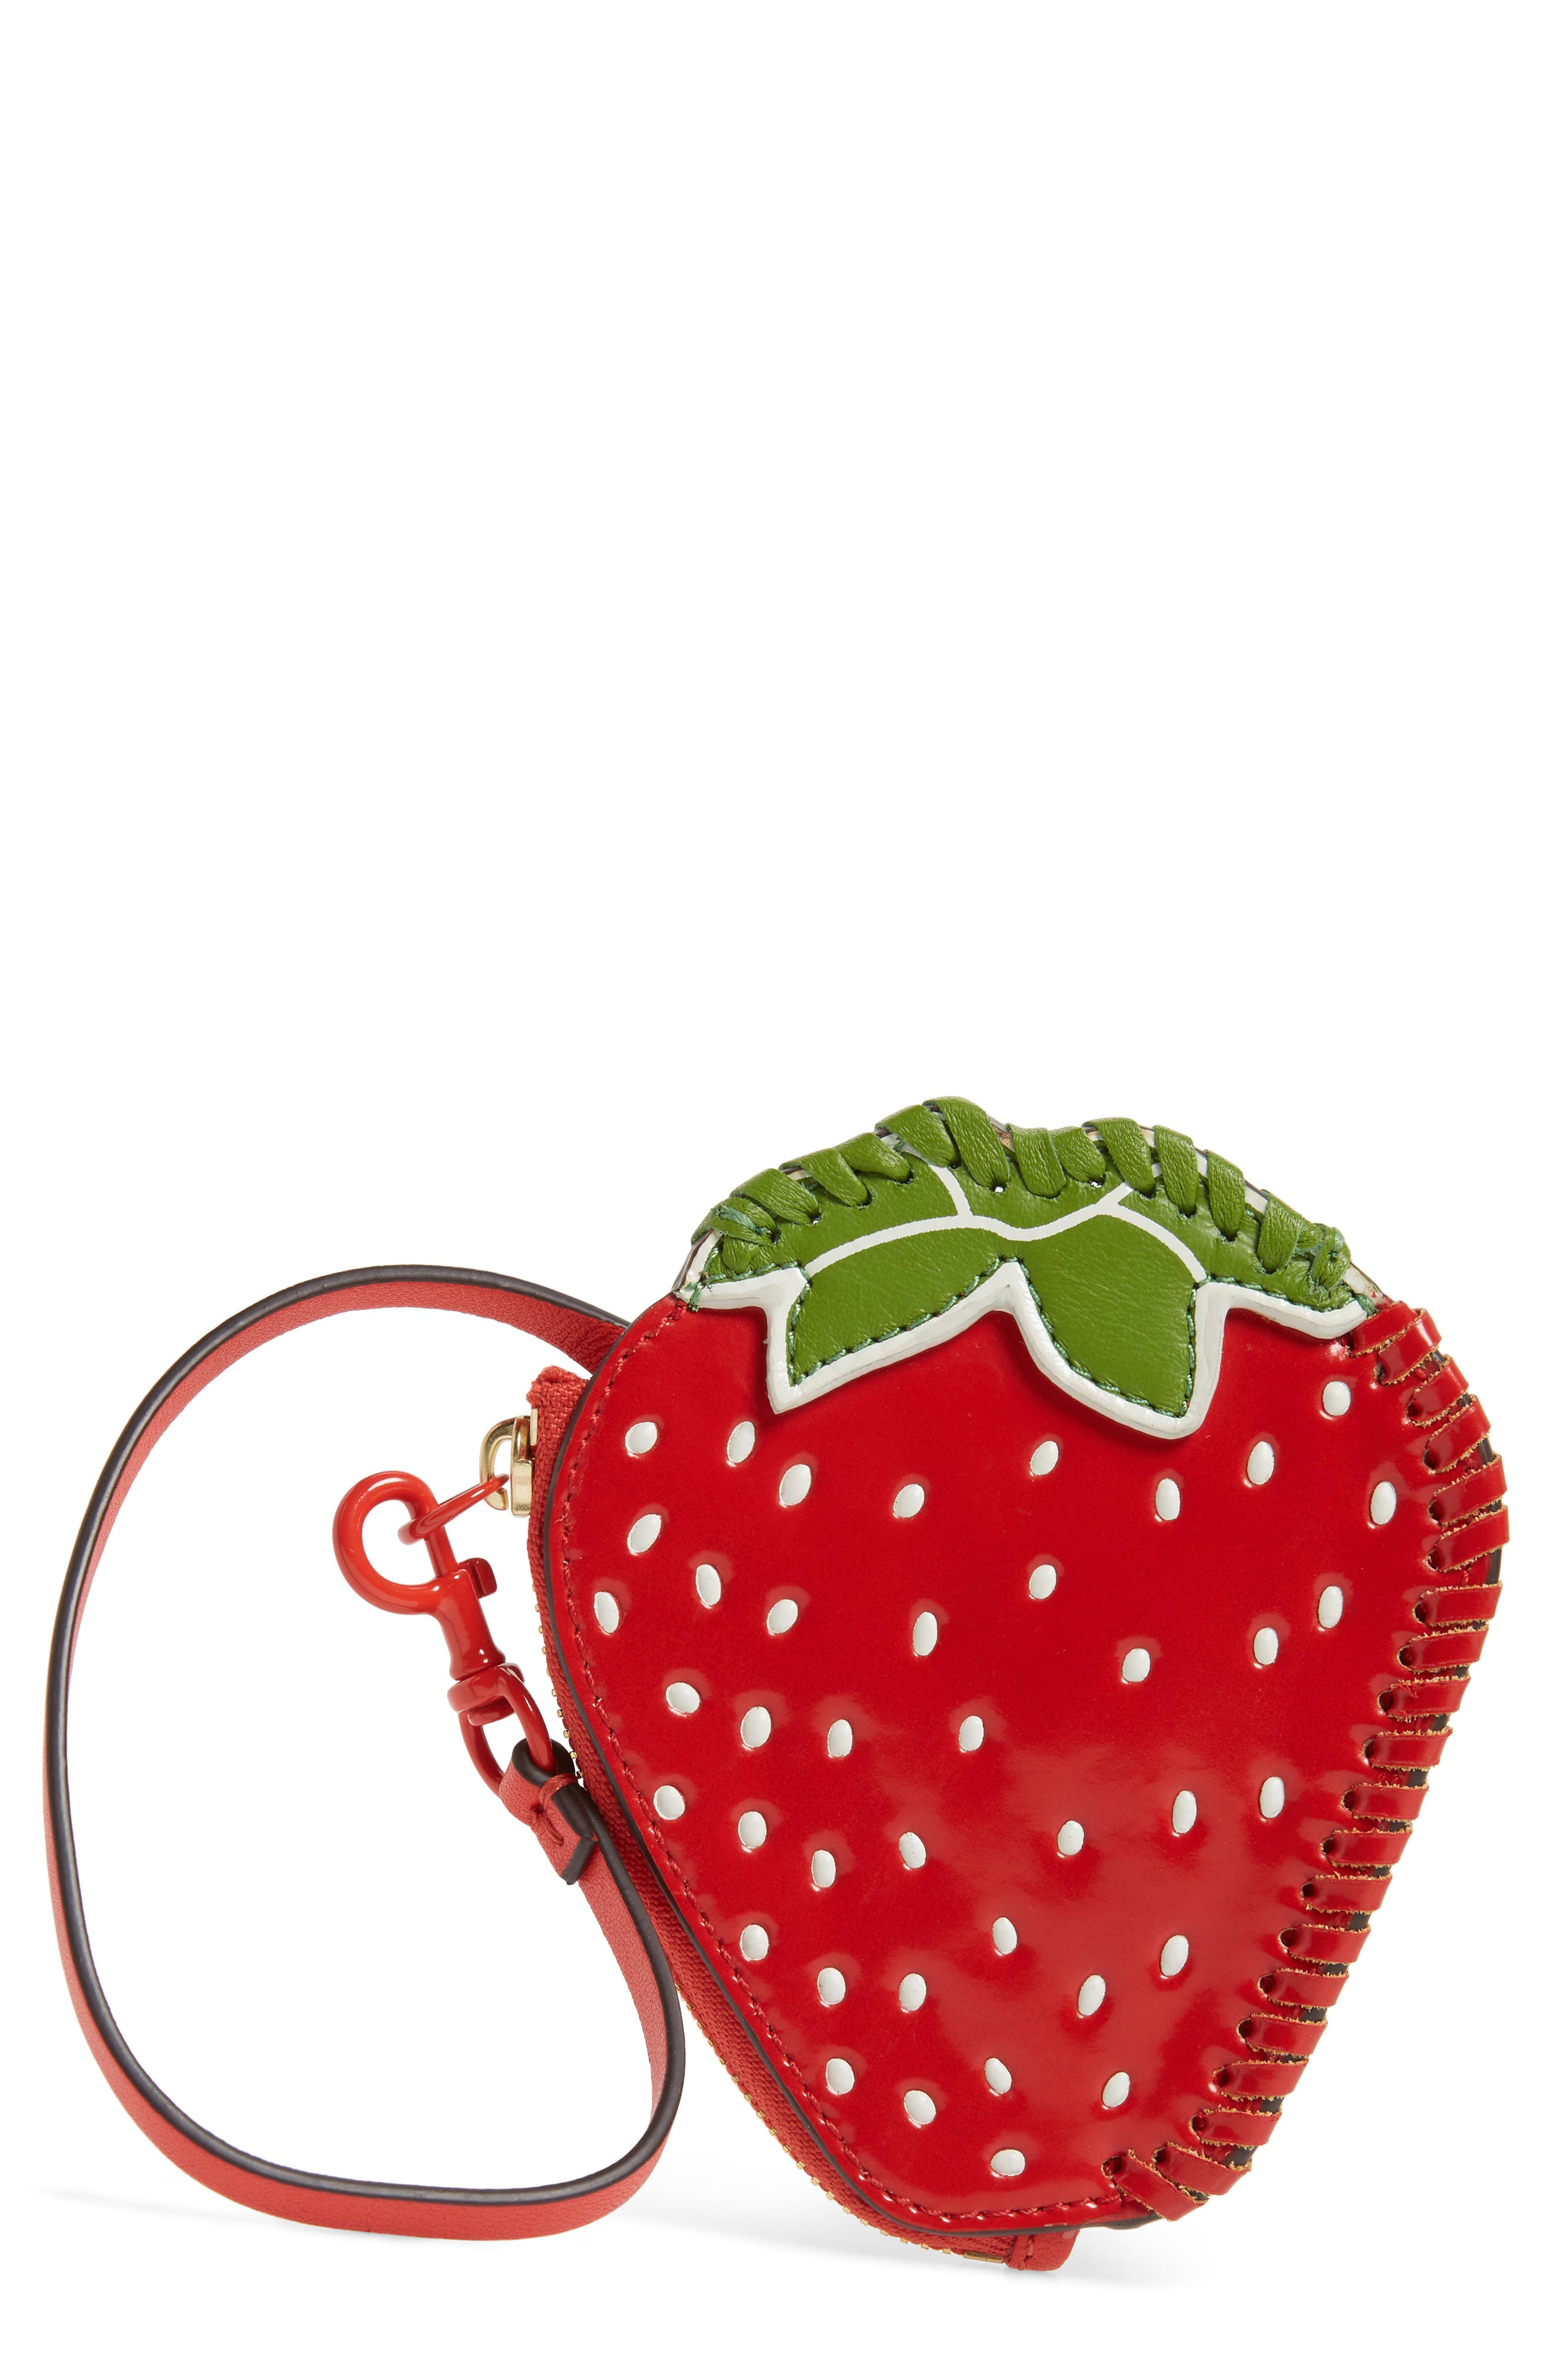 Strawberry Leather Coin Pouch,                         Main,                         color, Poppy Orange / Leaf Green